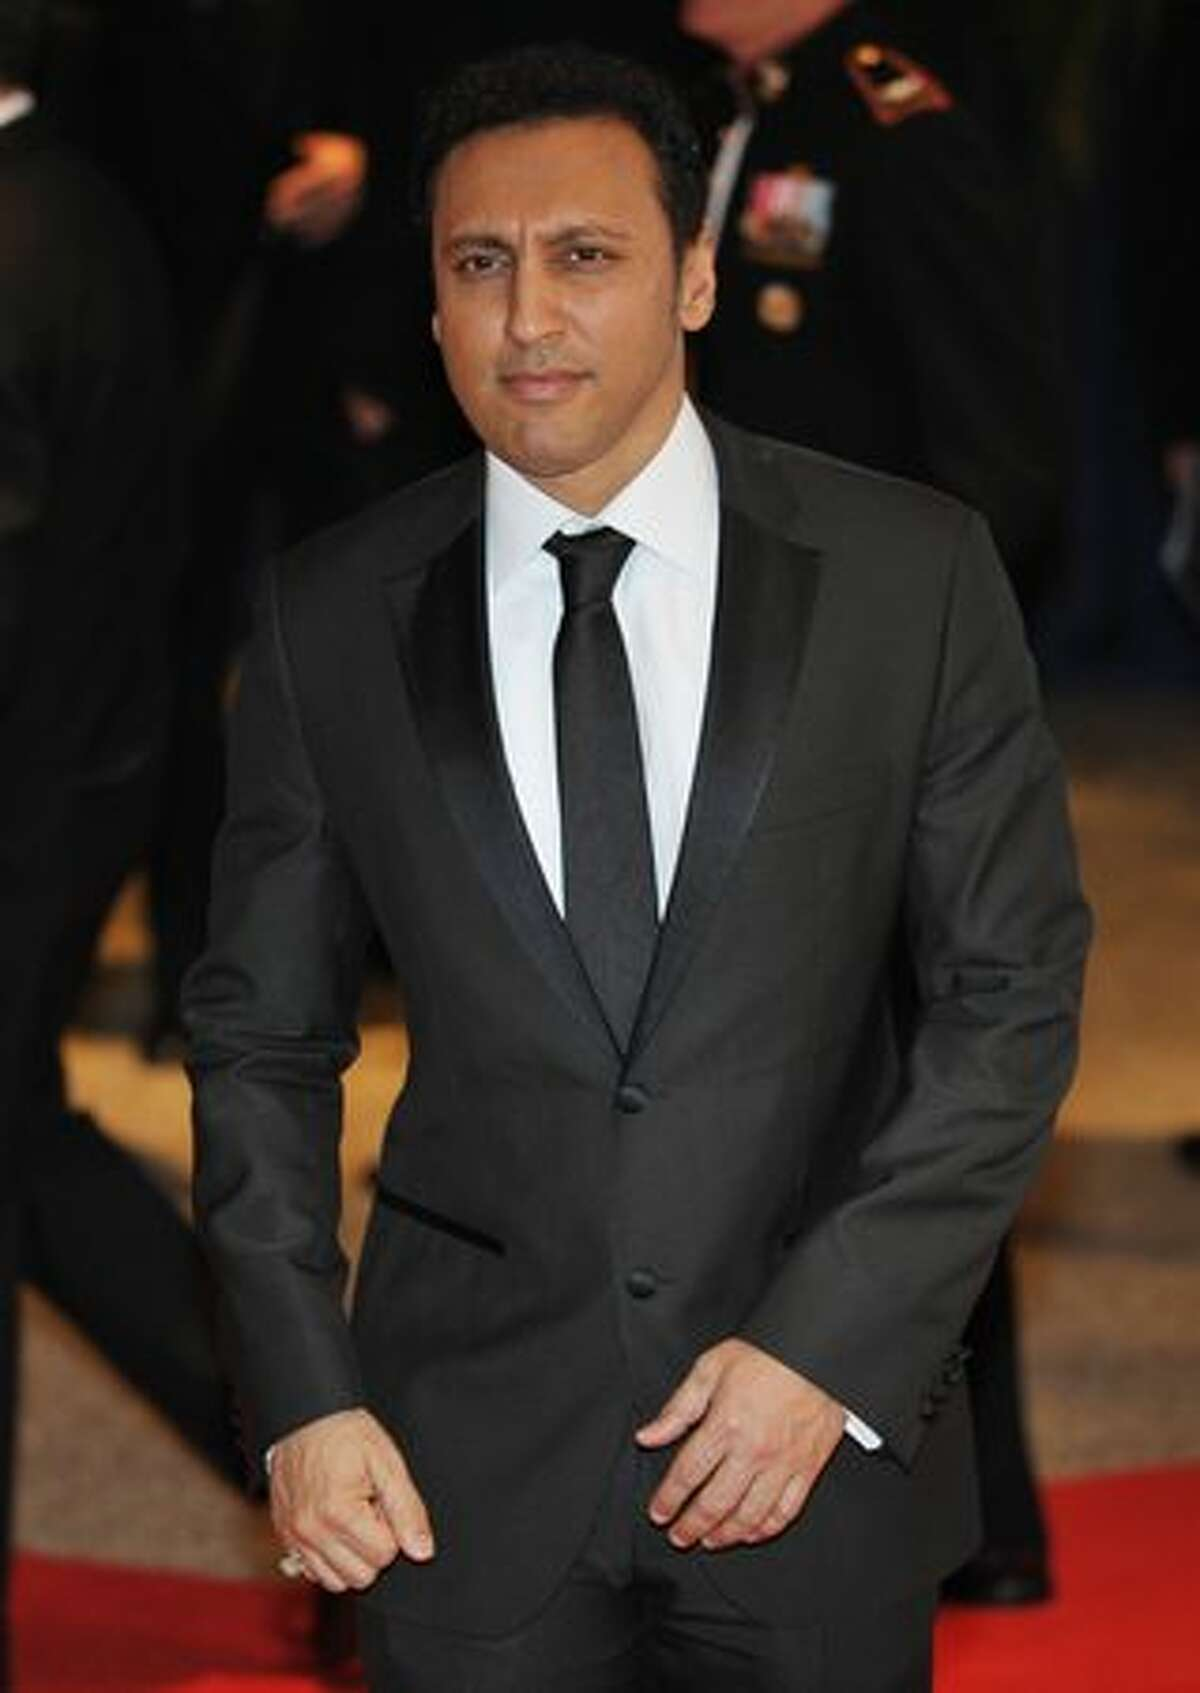 Daily Show correspondent Aasif Mandvi arrives for the 2010 White House Correspondents Dinner May 1, 2010 at a hotel in Washington, D..C.